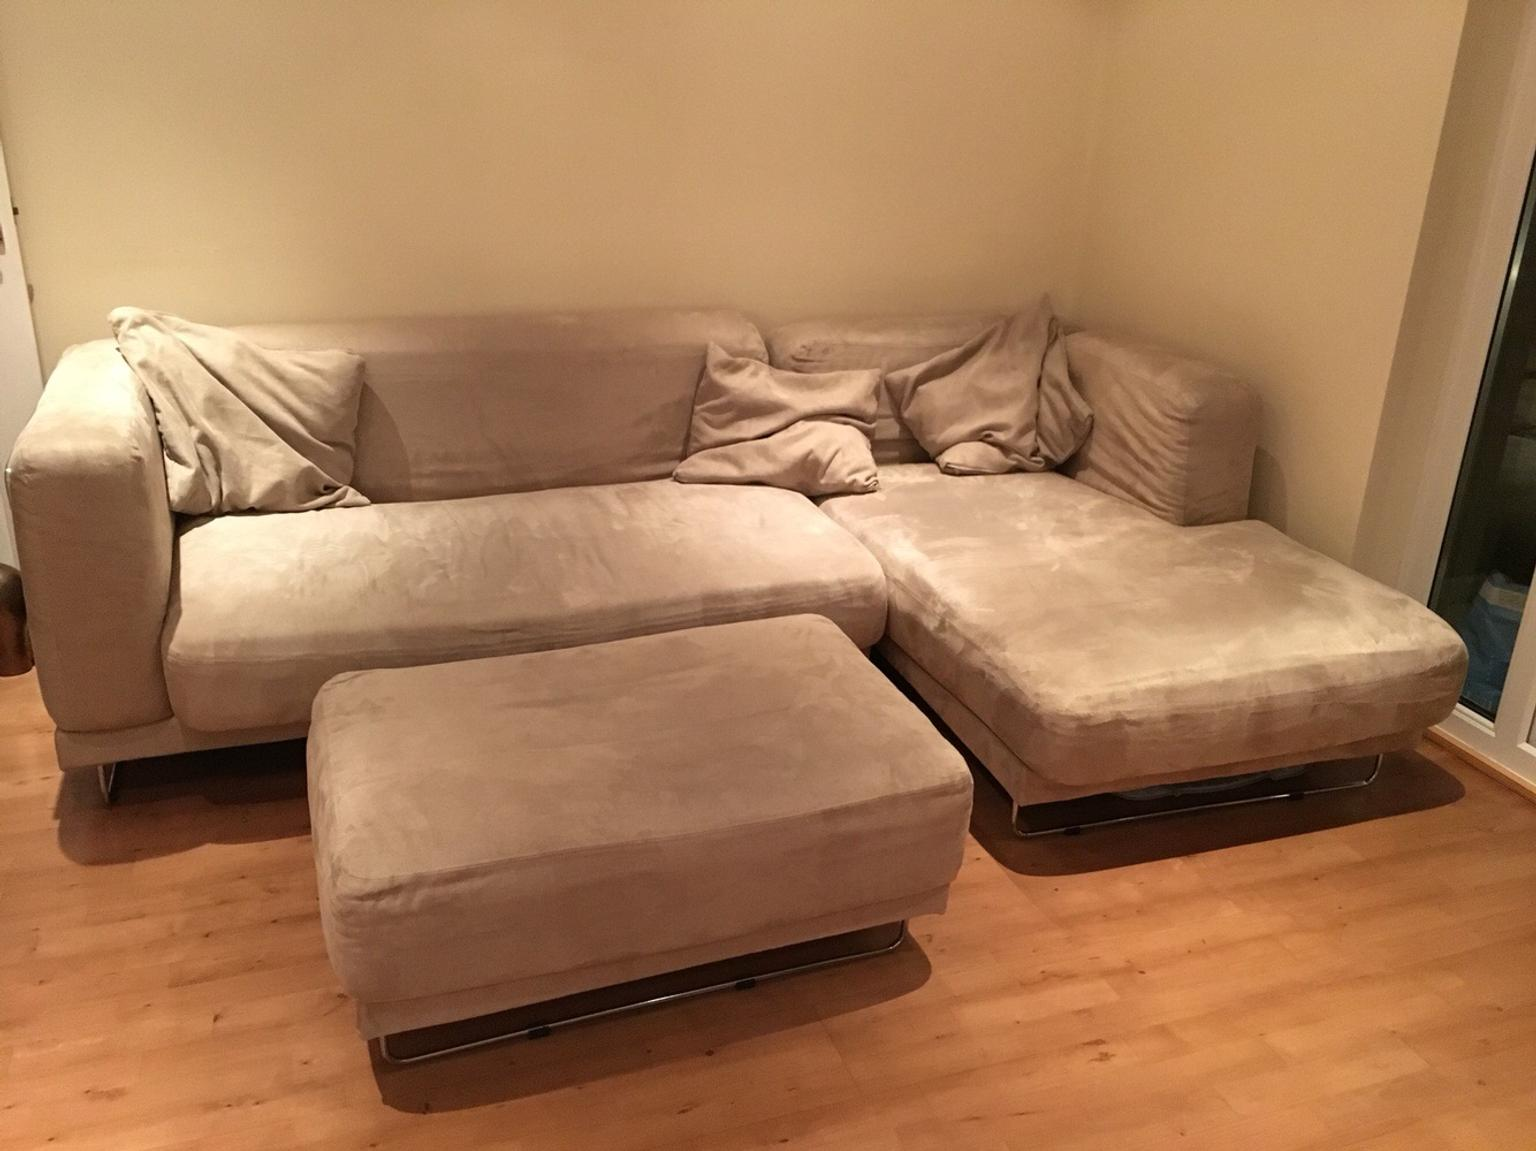 Fantastic Ikea Tylosand Corner Sofa Footstool Gmtry Best Dining Table And Chair Ideas Images Gmtryco